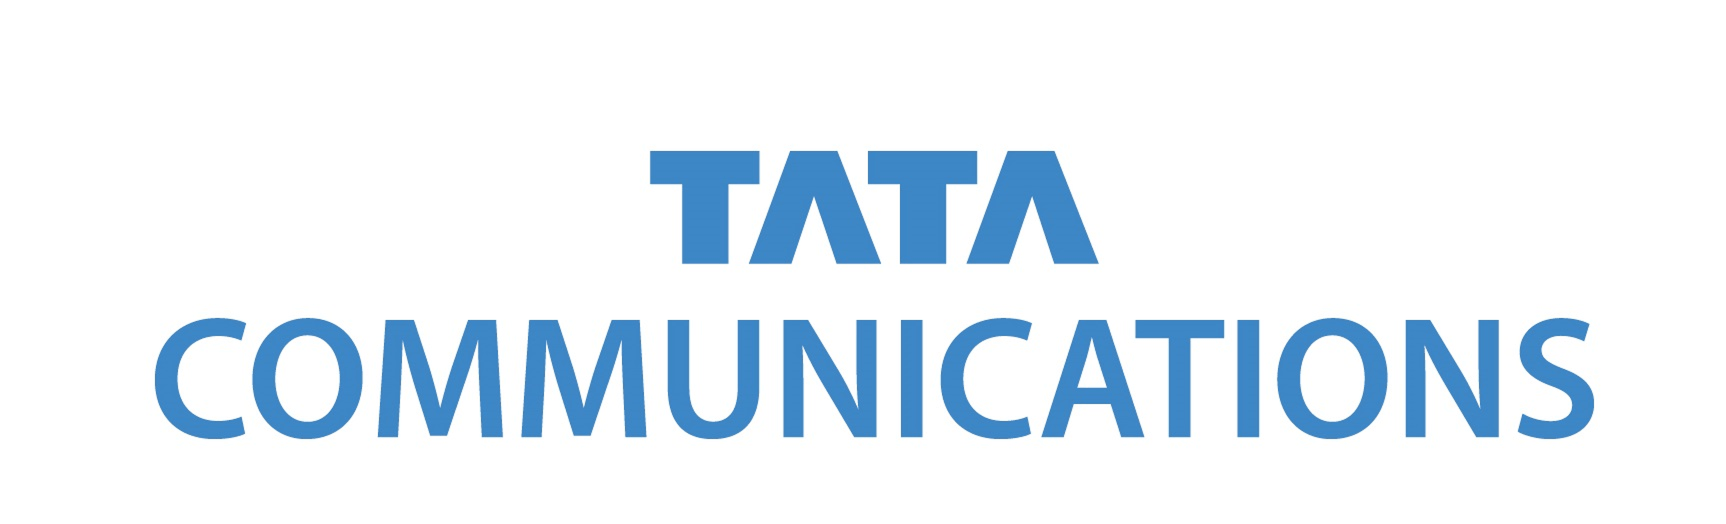 Tata Communications (Middle East) FZ – LLC